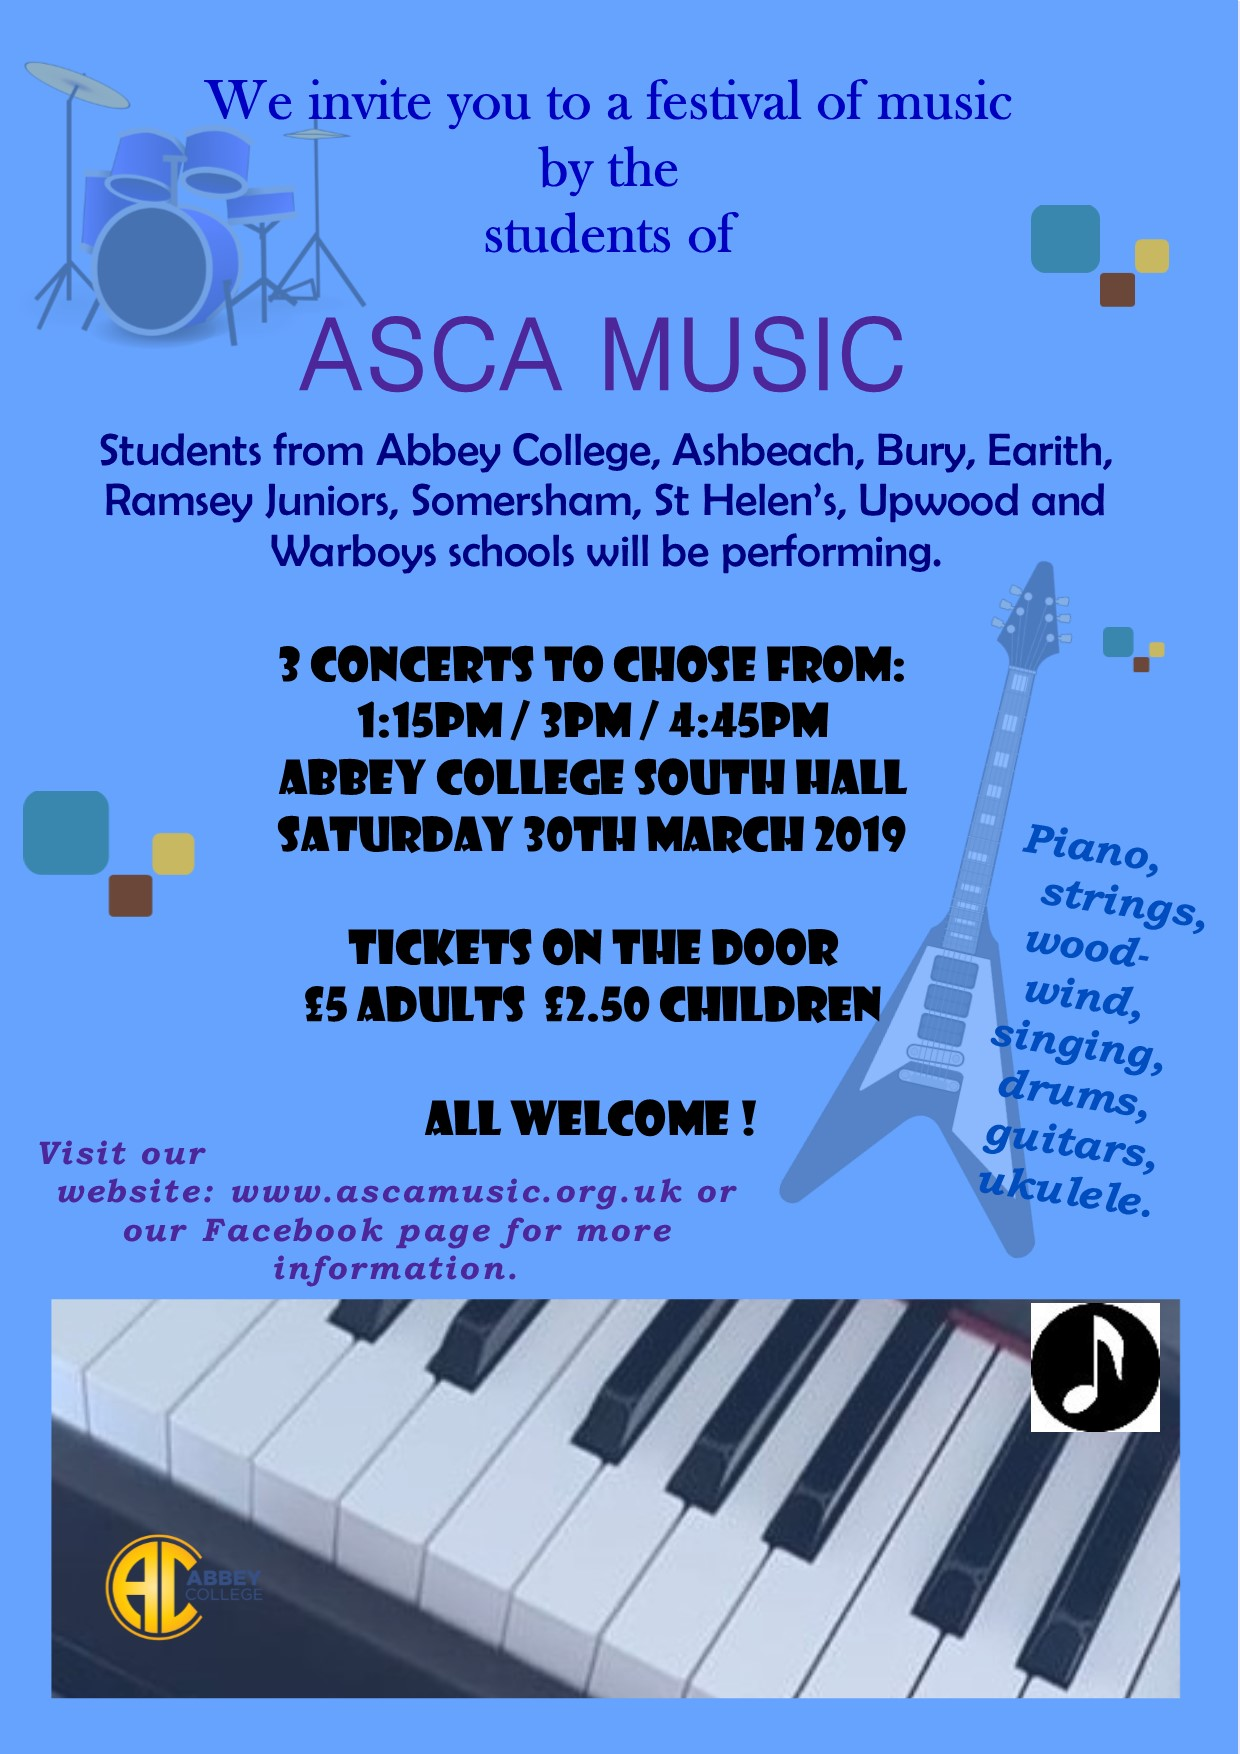 ASCA Music festival 2019 all welcome